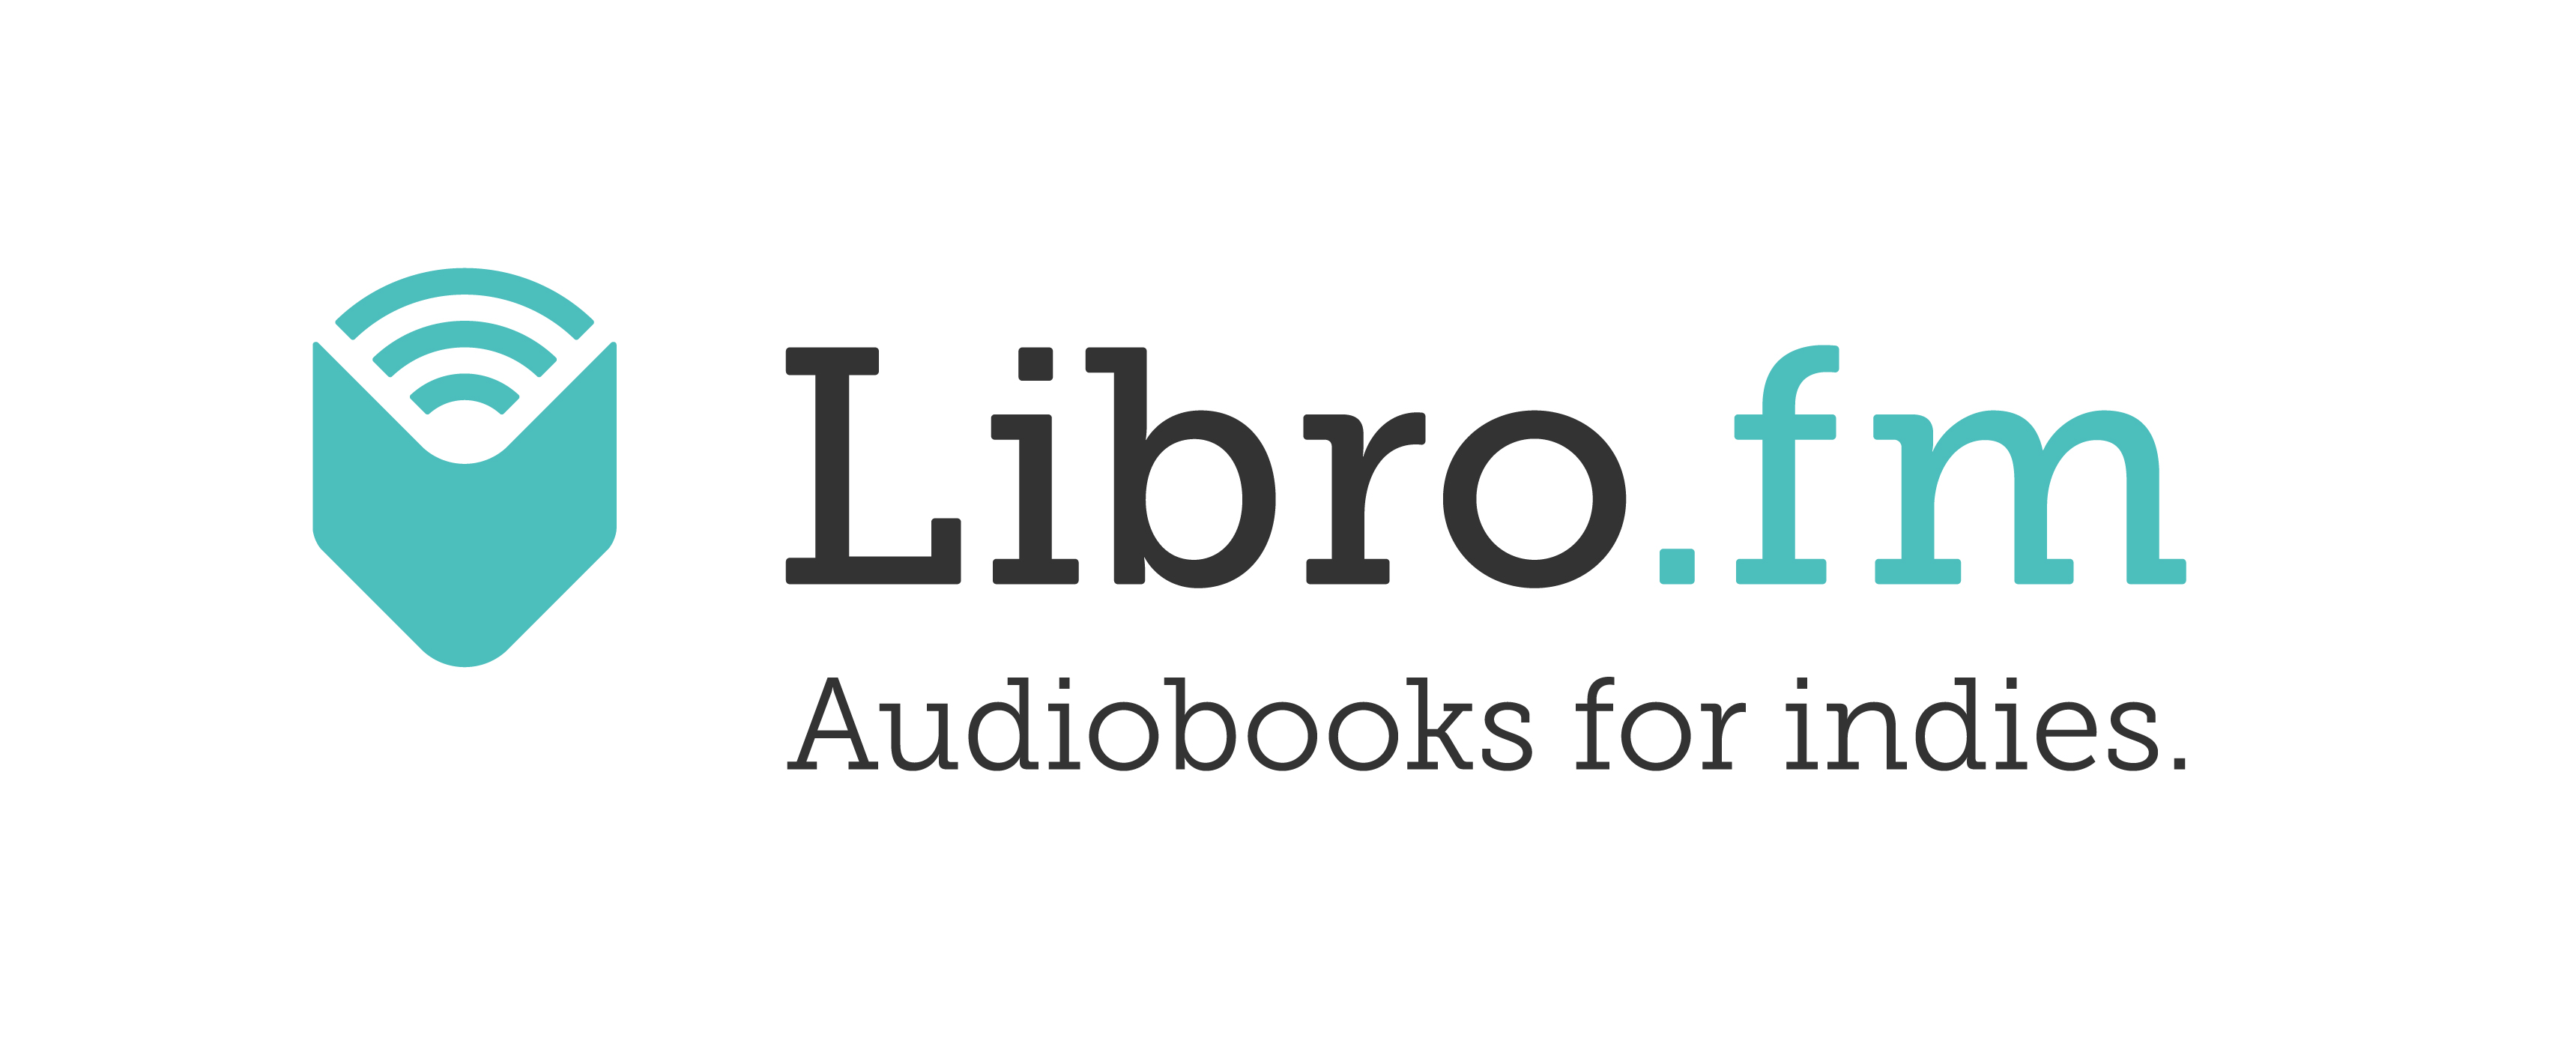 Audible Account Sharing a celebration of libro.fm: the indie, drm-free audible